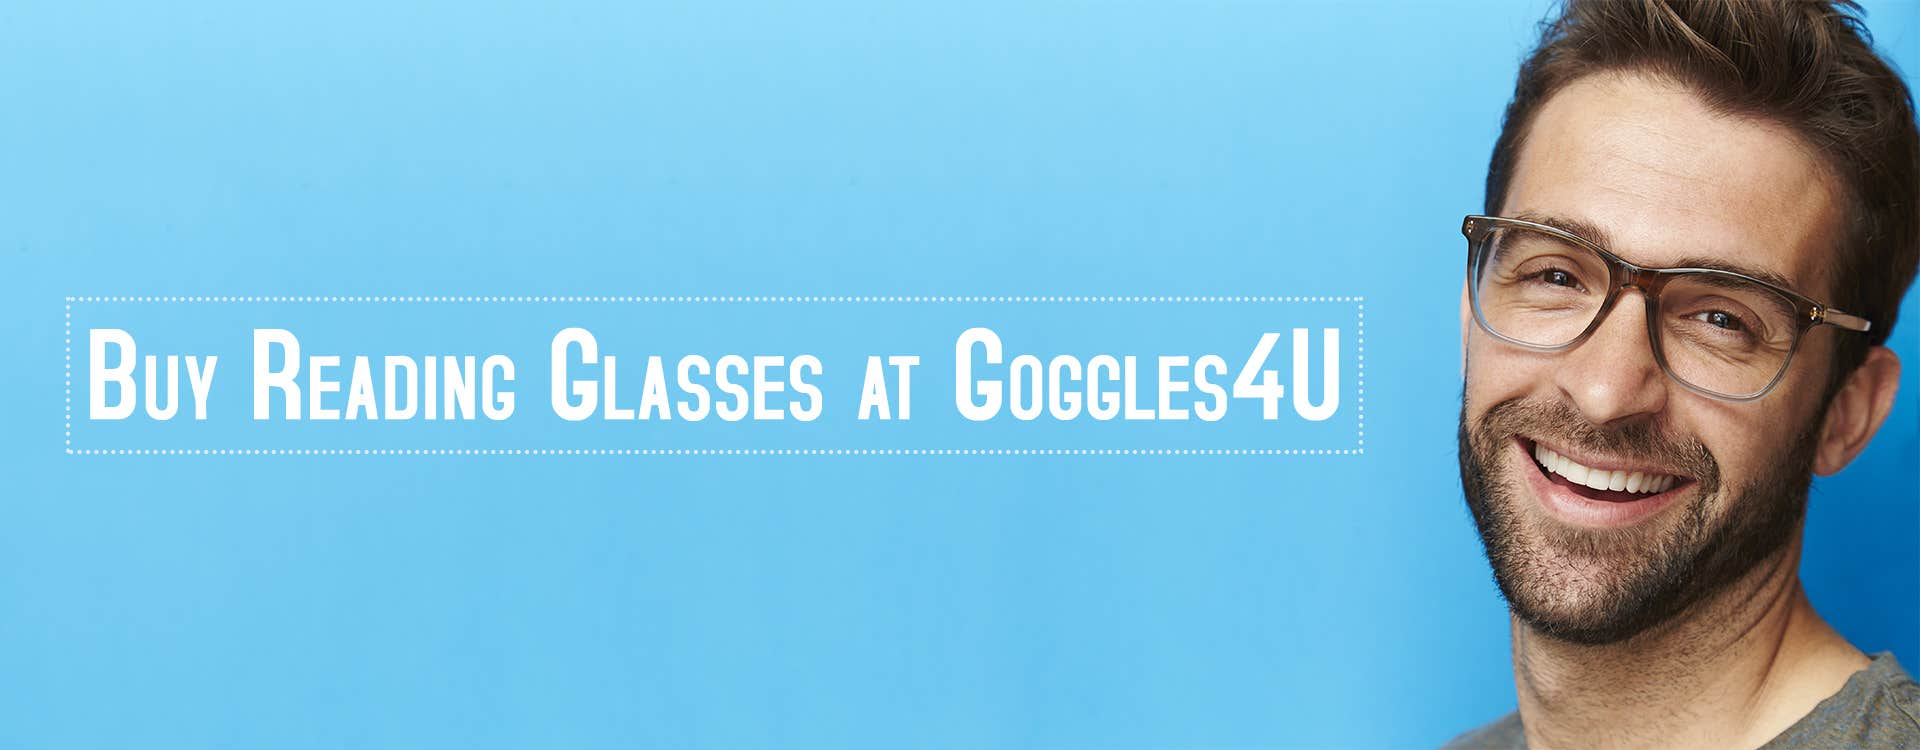 Your Way To Clear Vision, Reading Eyeglasses - Goggles4u.com